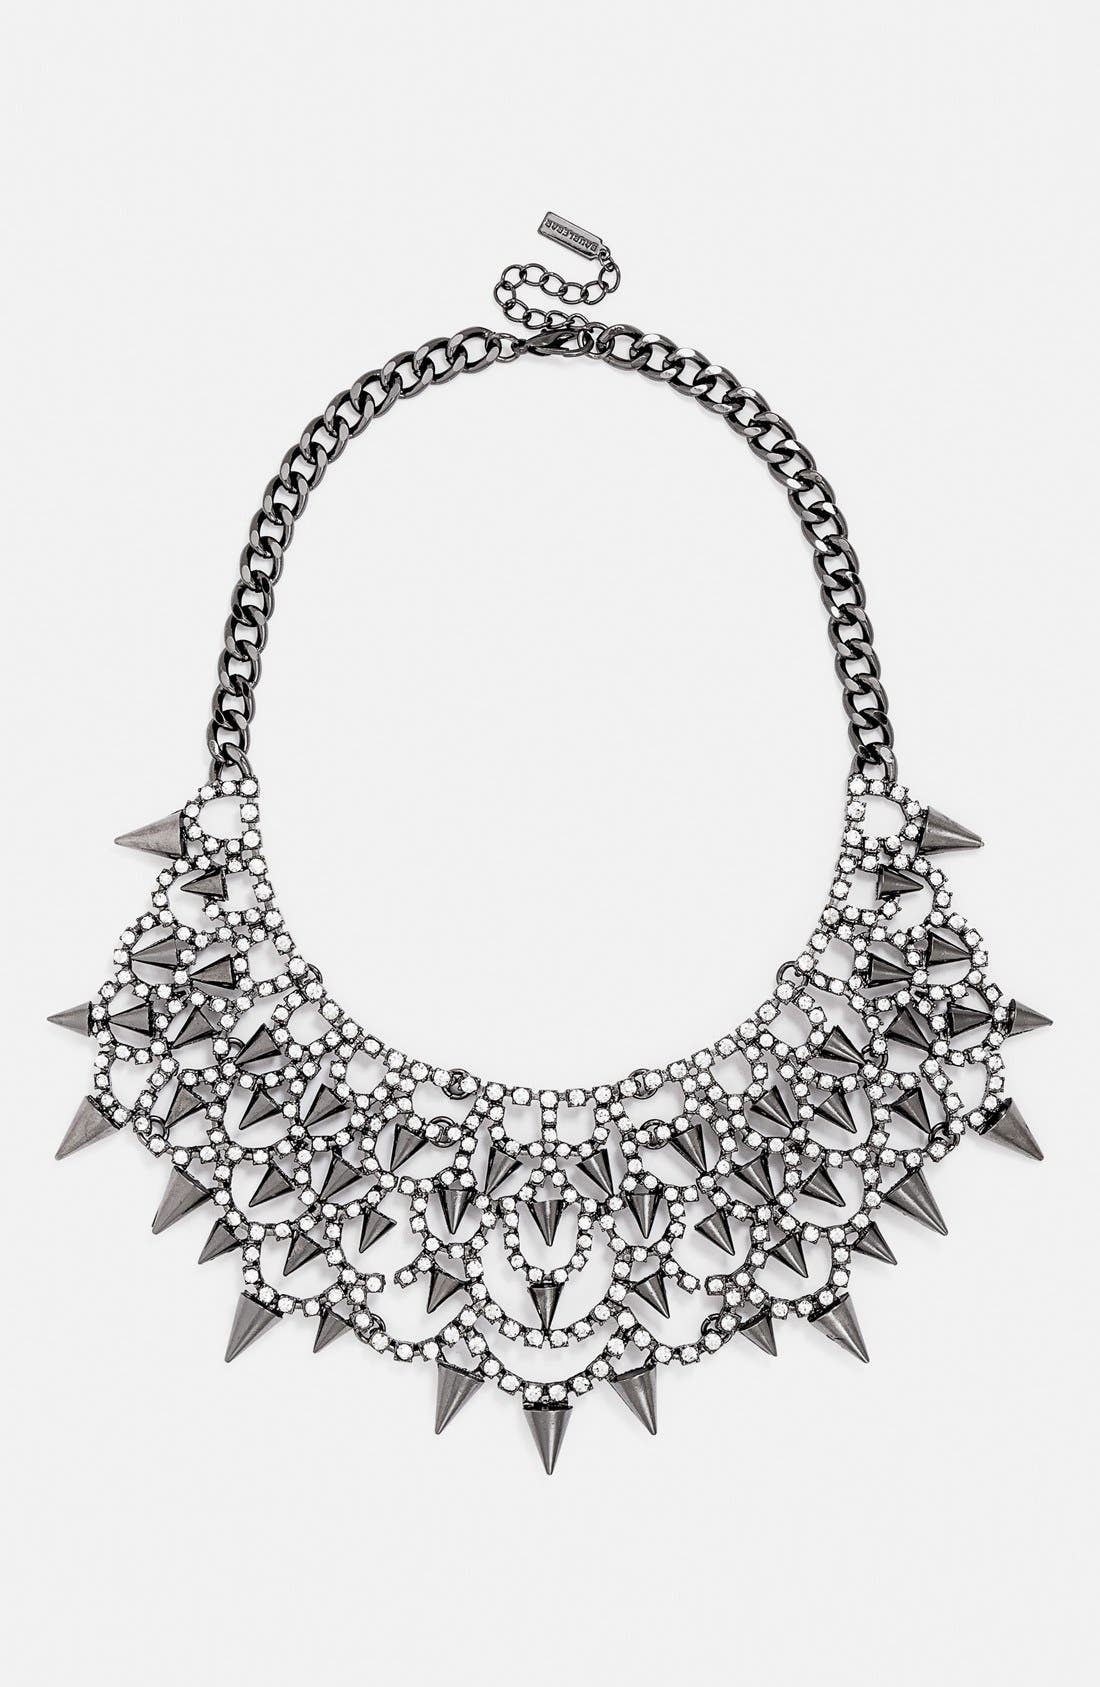 'Gothic Fang' Bib Necklace,                             Main thumbnail 1, color,                             Heamtite/ Clear